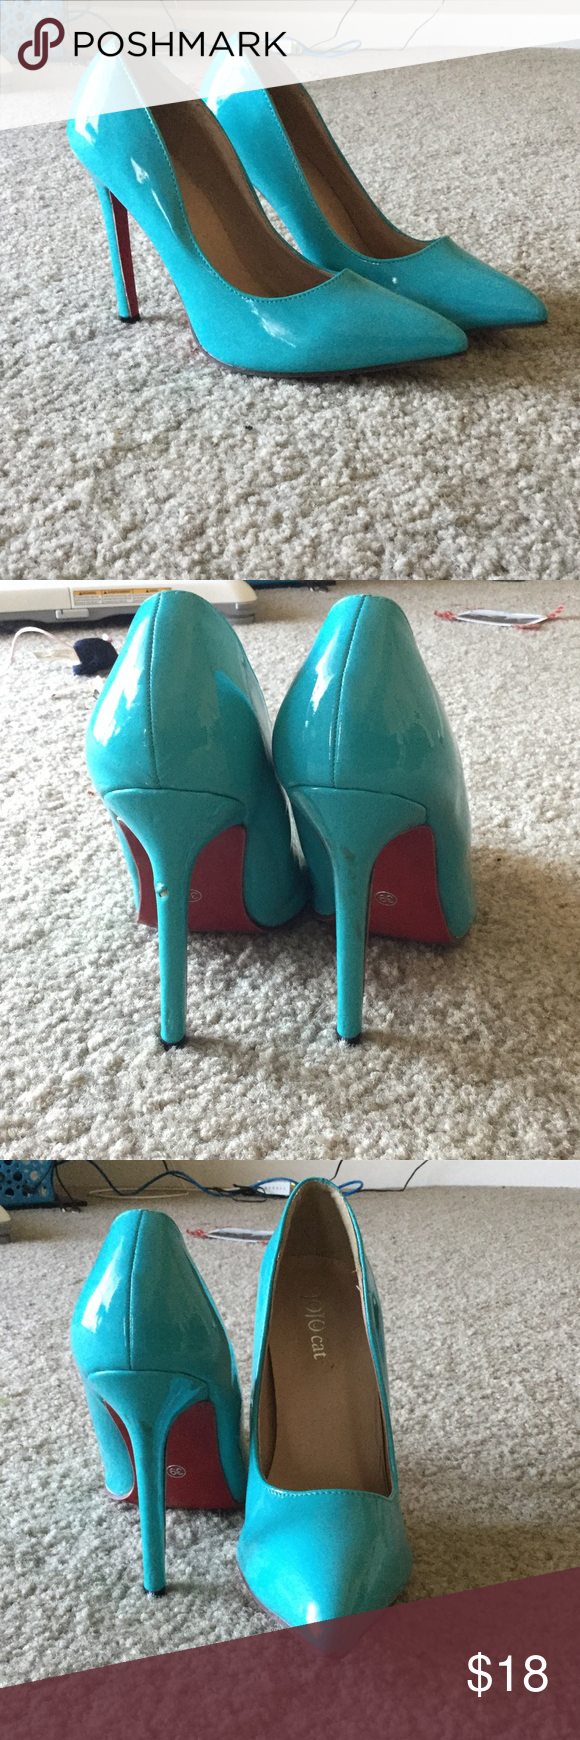 Light Blue Jojo Cat Heels With Red Soles Cat Shoes Red Sole Clothes Design